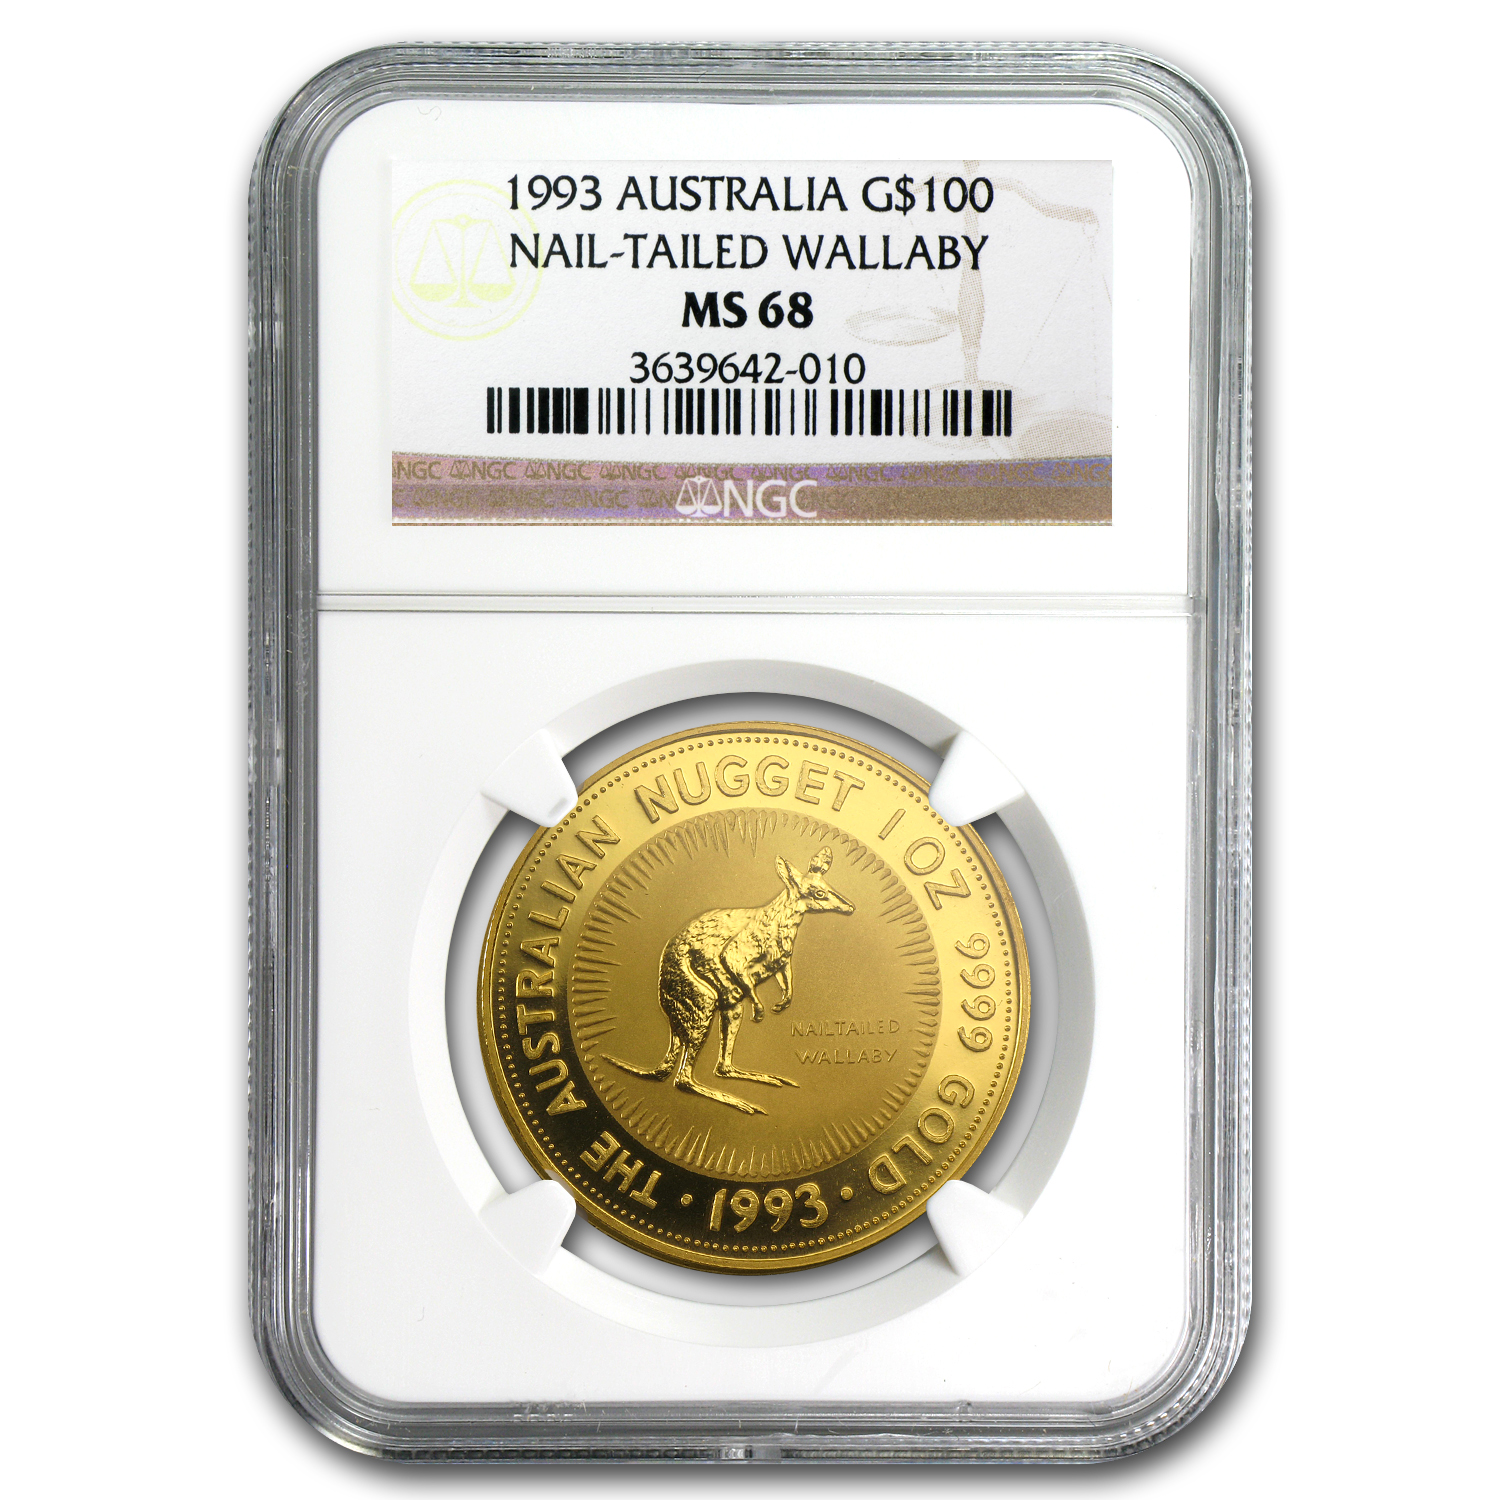 1993 Australia 1 oz Gold Nugget MS-68 NGC